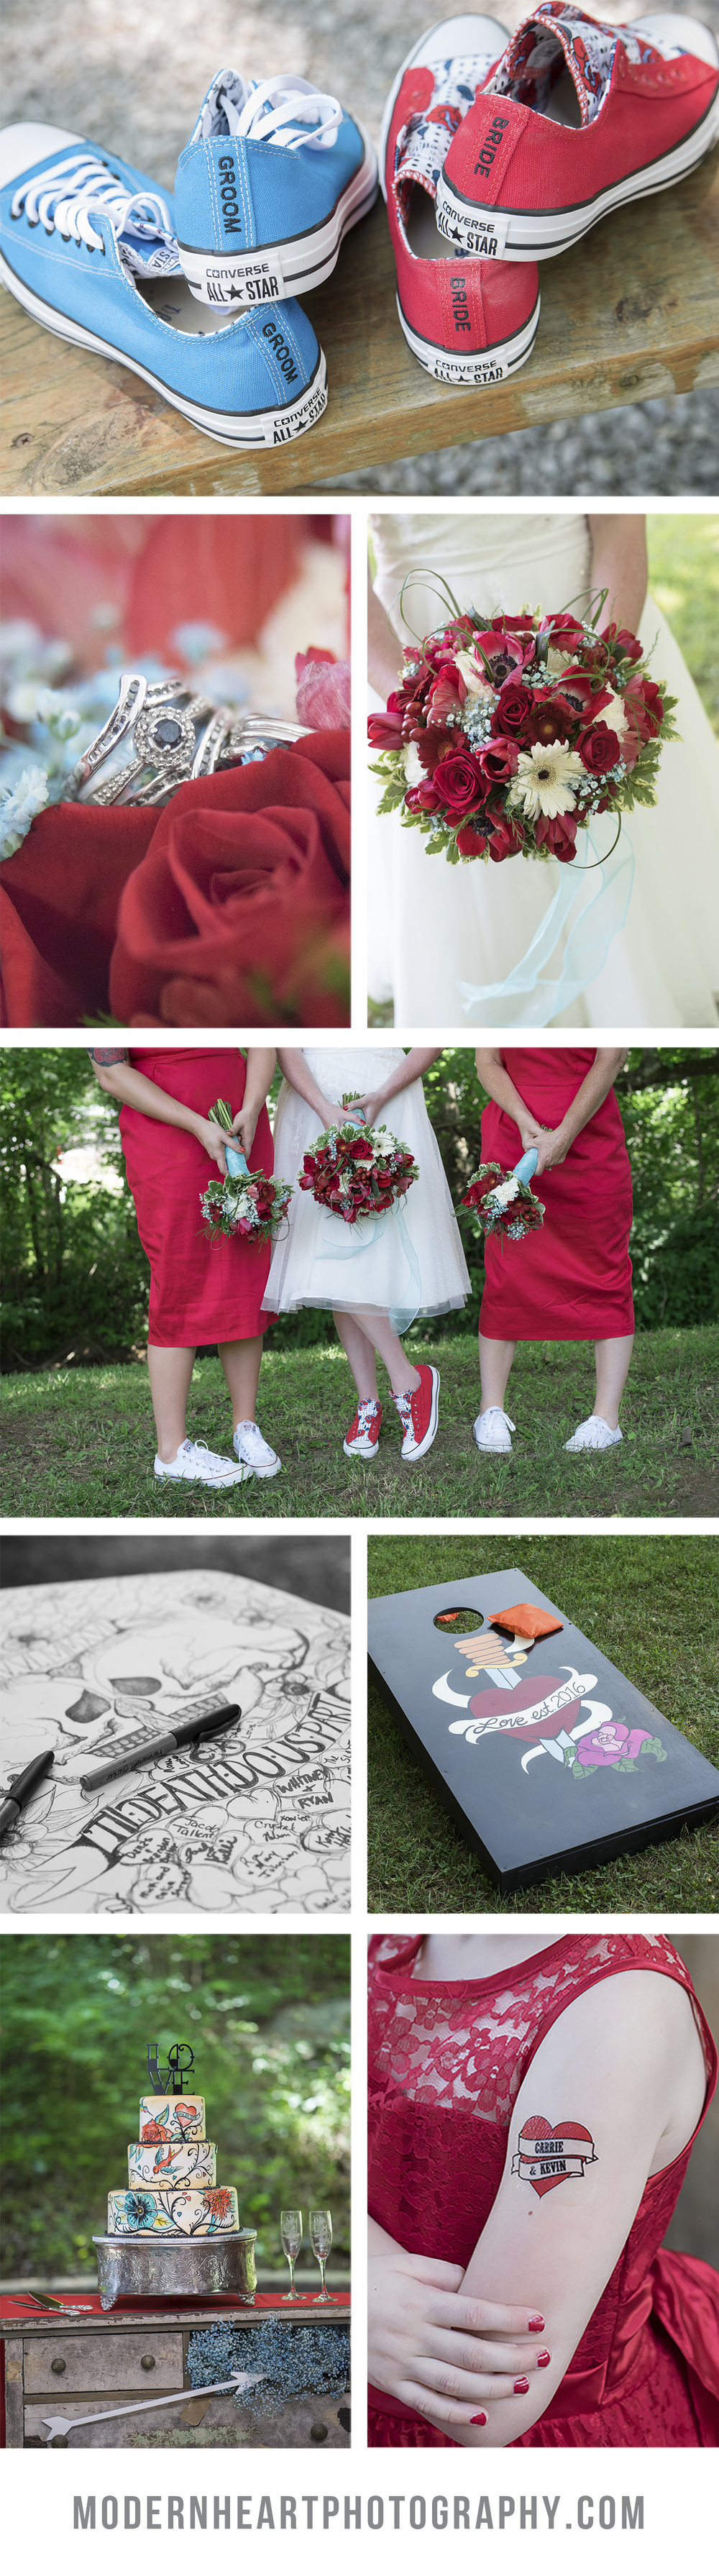 Rockabilly Wedding Inspiration - Red and Blue Wedding Inspiration - Real Wedding Inspiration - by Modern Heart Photography - Tennessee, Virginia, and North Carolina Wedding Photographer #modernheart #modernheartweddings